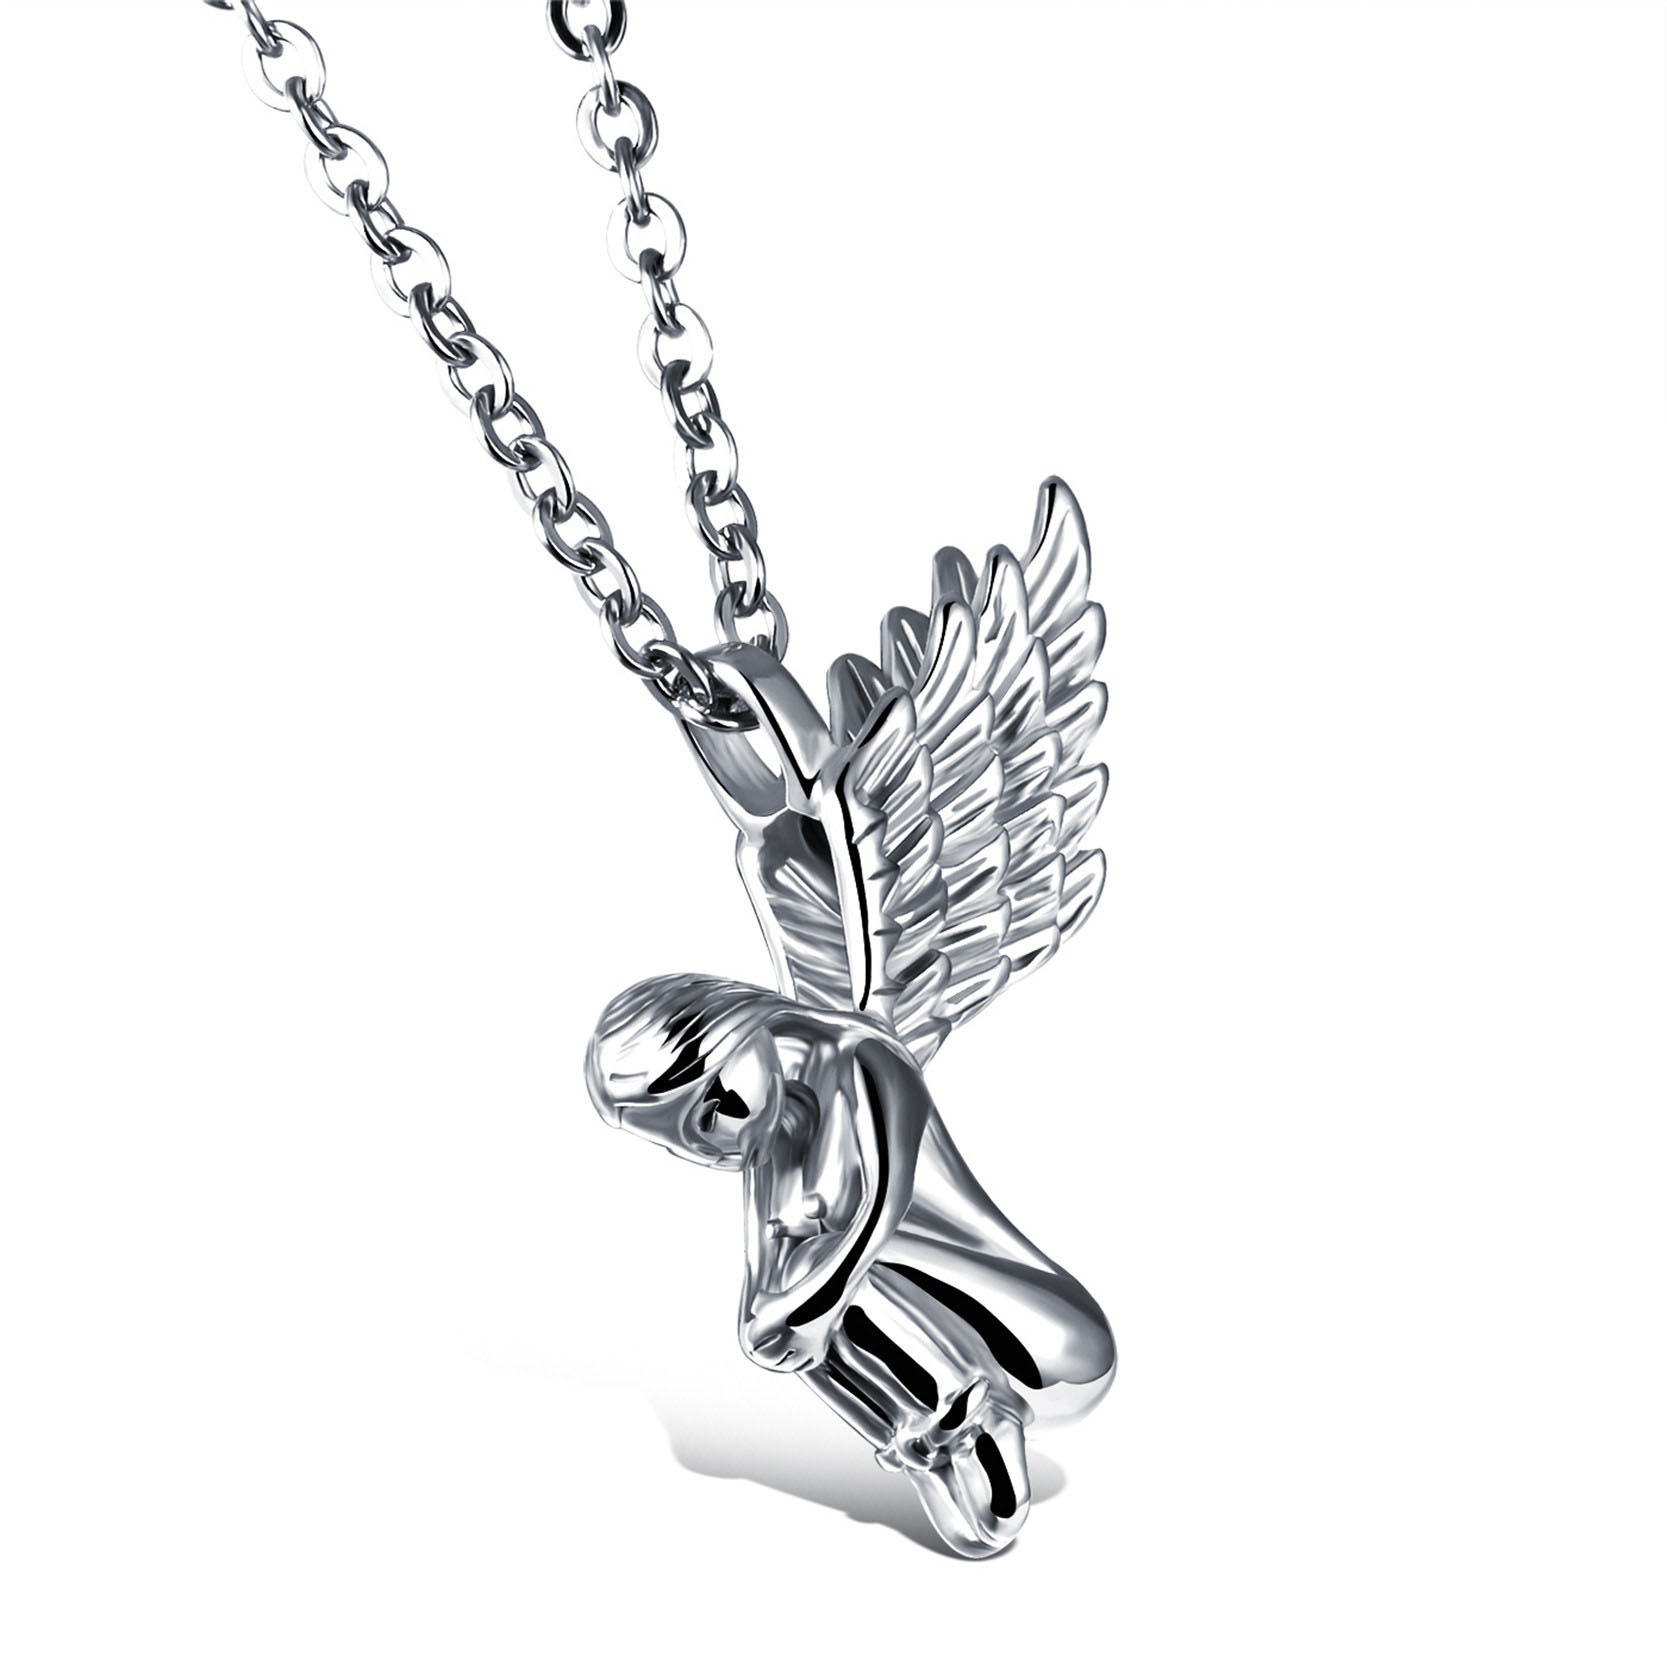 fairy silver products small fine necklace jewellers joy focus london everley